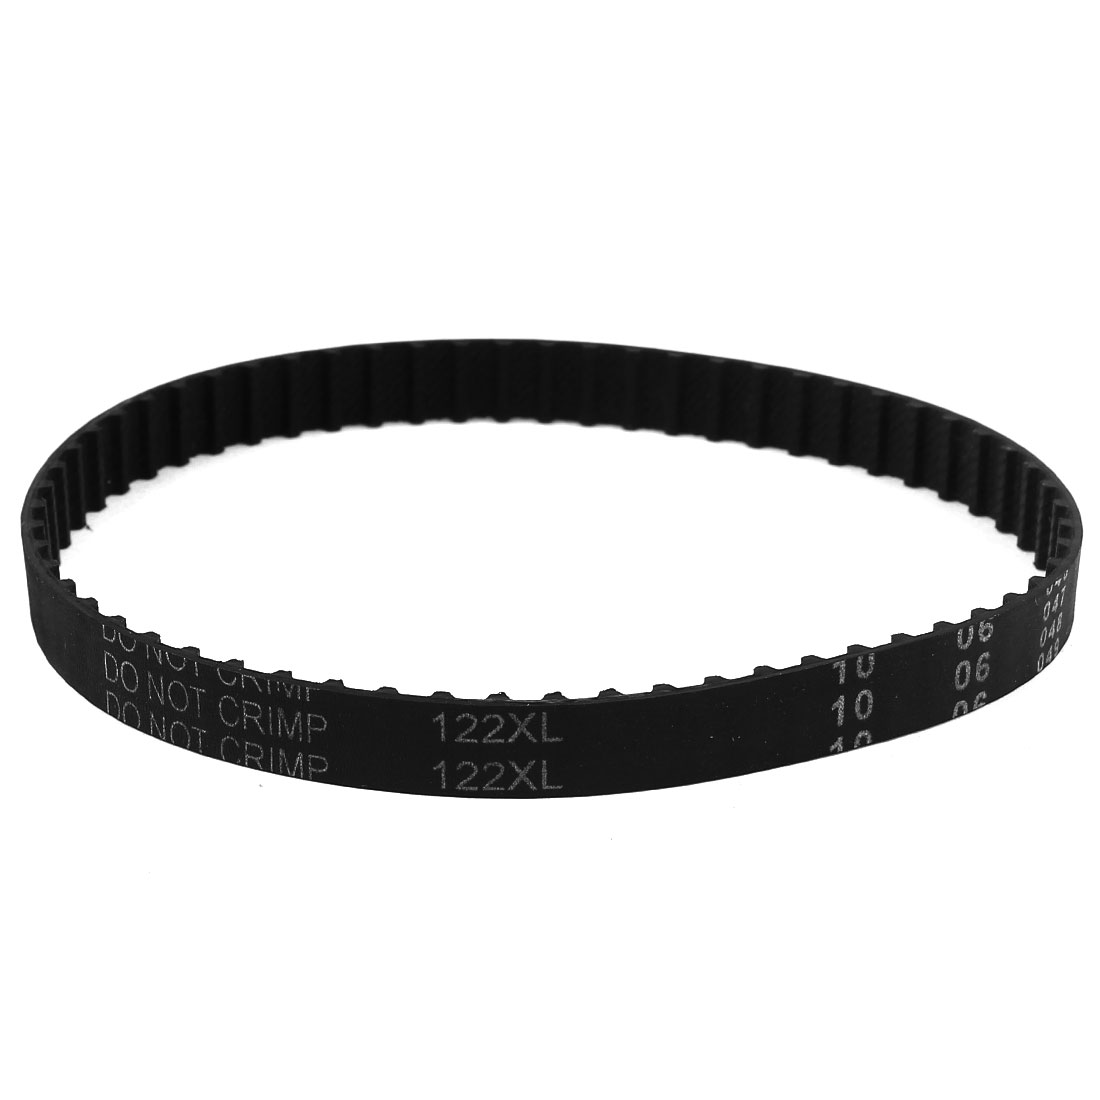 122XL Series 037 9.5mm Wide 61 Teeth 309.88mm Pitch Length Timing Belt